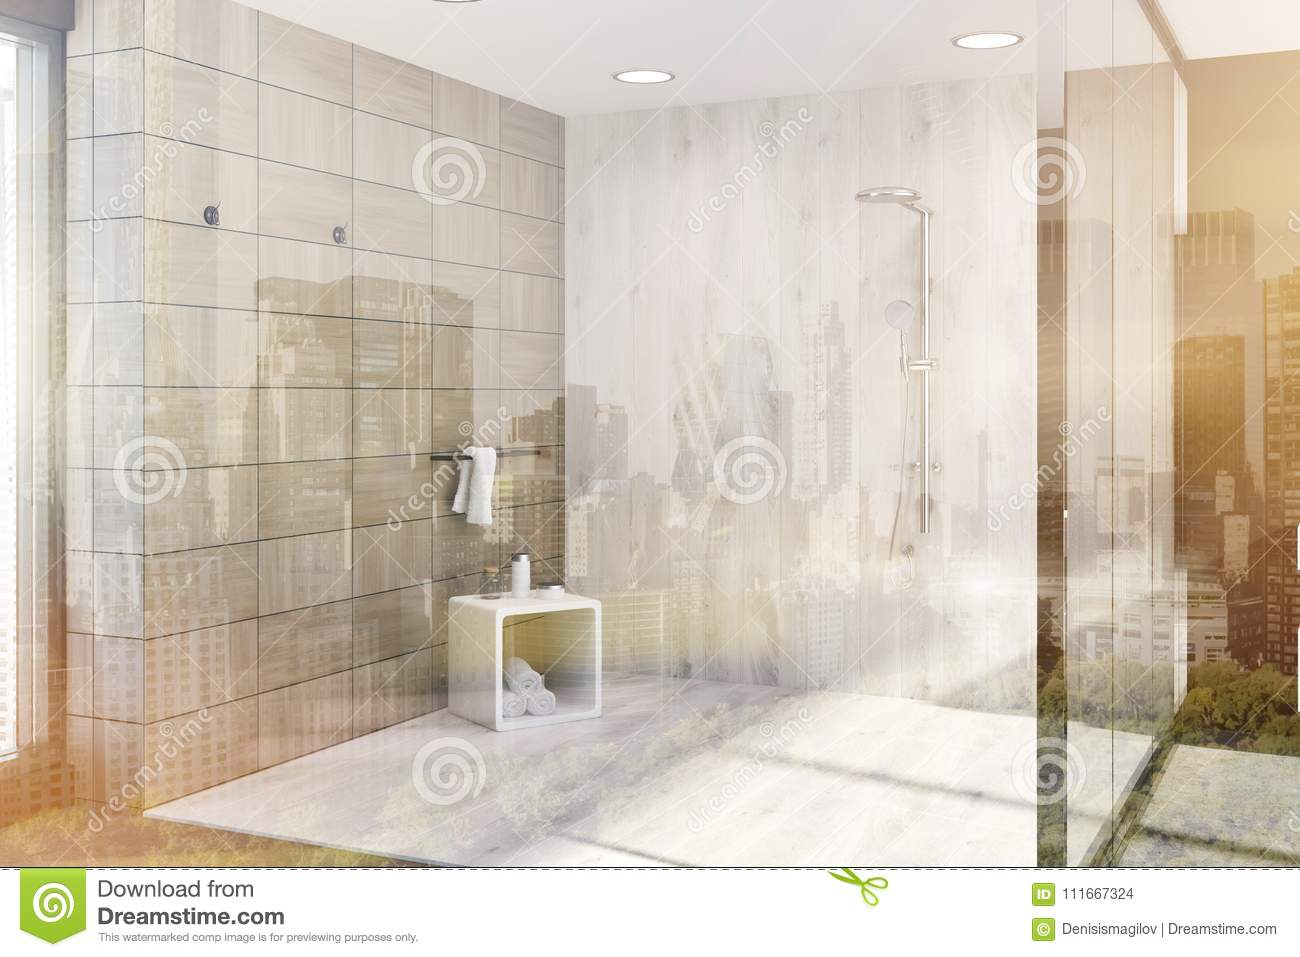 Wooden Tiles Brown Bathroom Corner, Shower Toned Stock Illustration ...